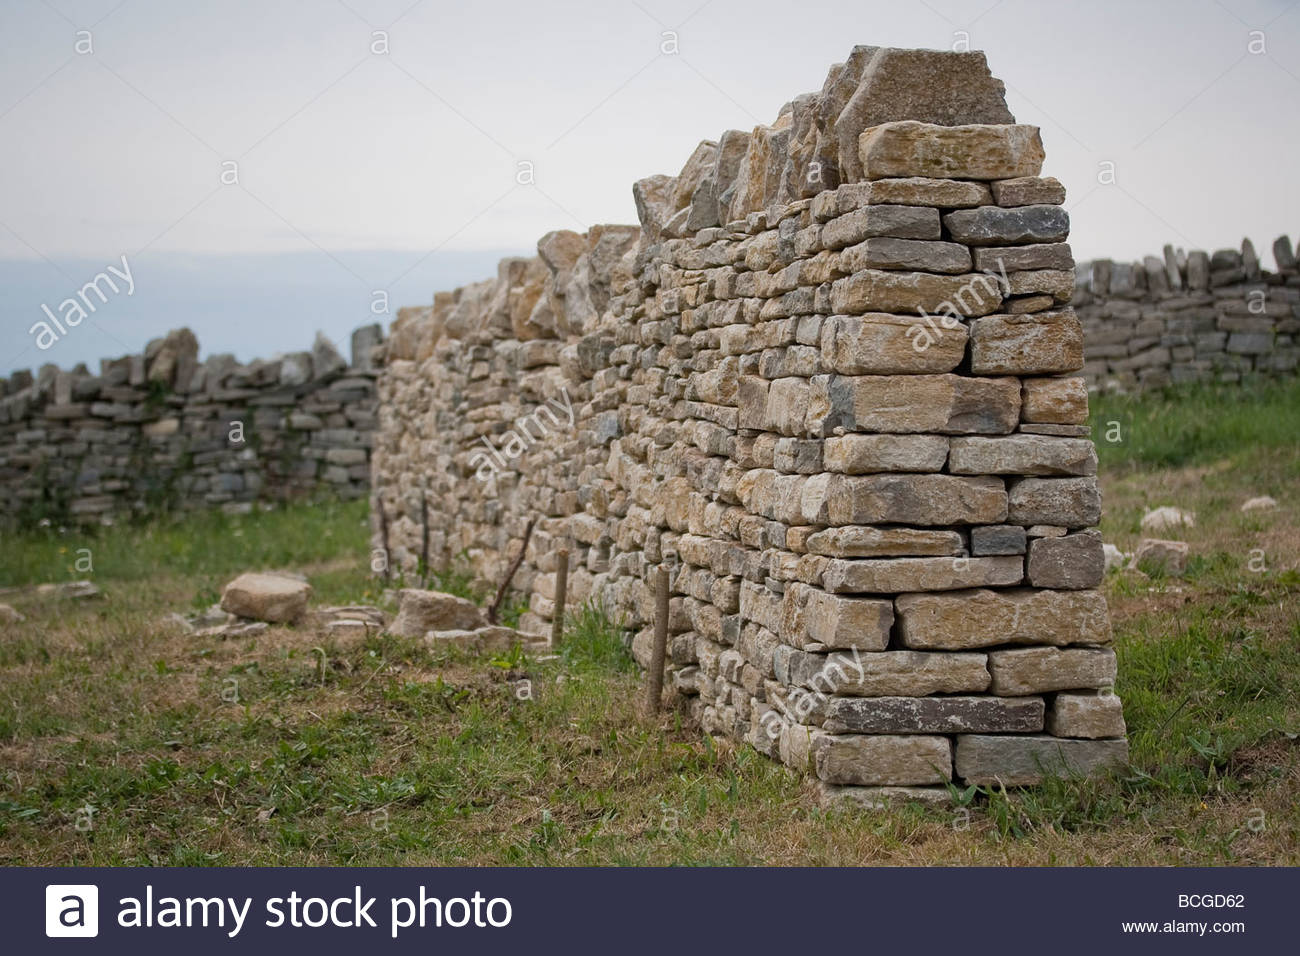 Section of dry stone wall on the Isle of Purbeck, Dorset, UK - Stock Image